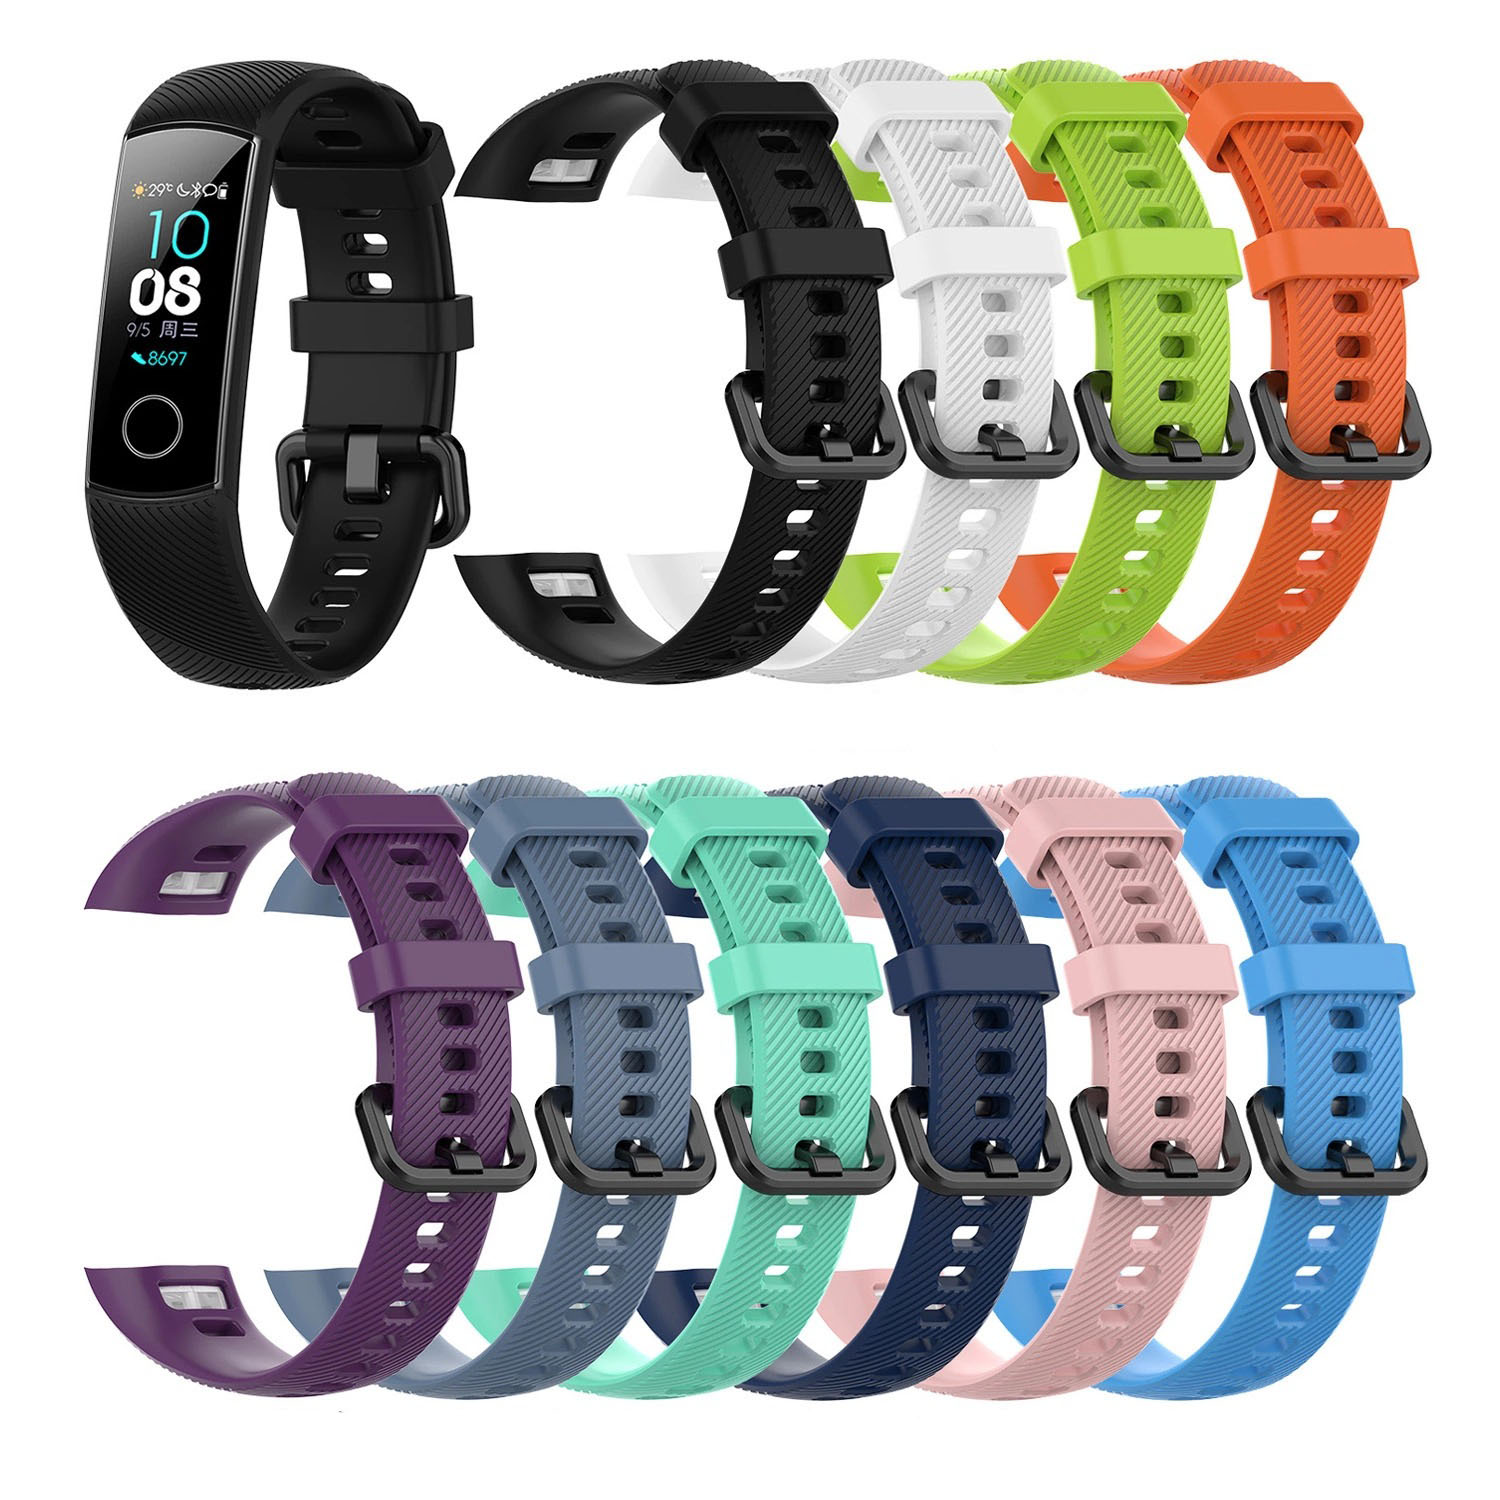 For Huawei Honor Band 5i Strap Silicone Universal Colorful Replacement Sports Watch Band For Honor Band 5i Bracelet